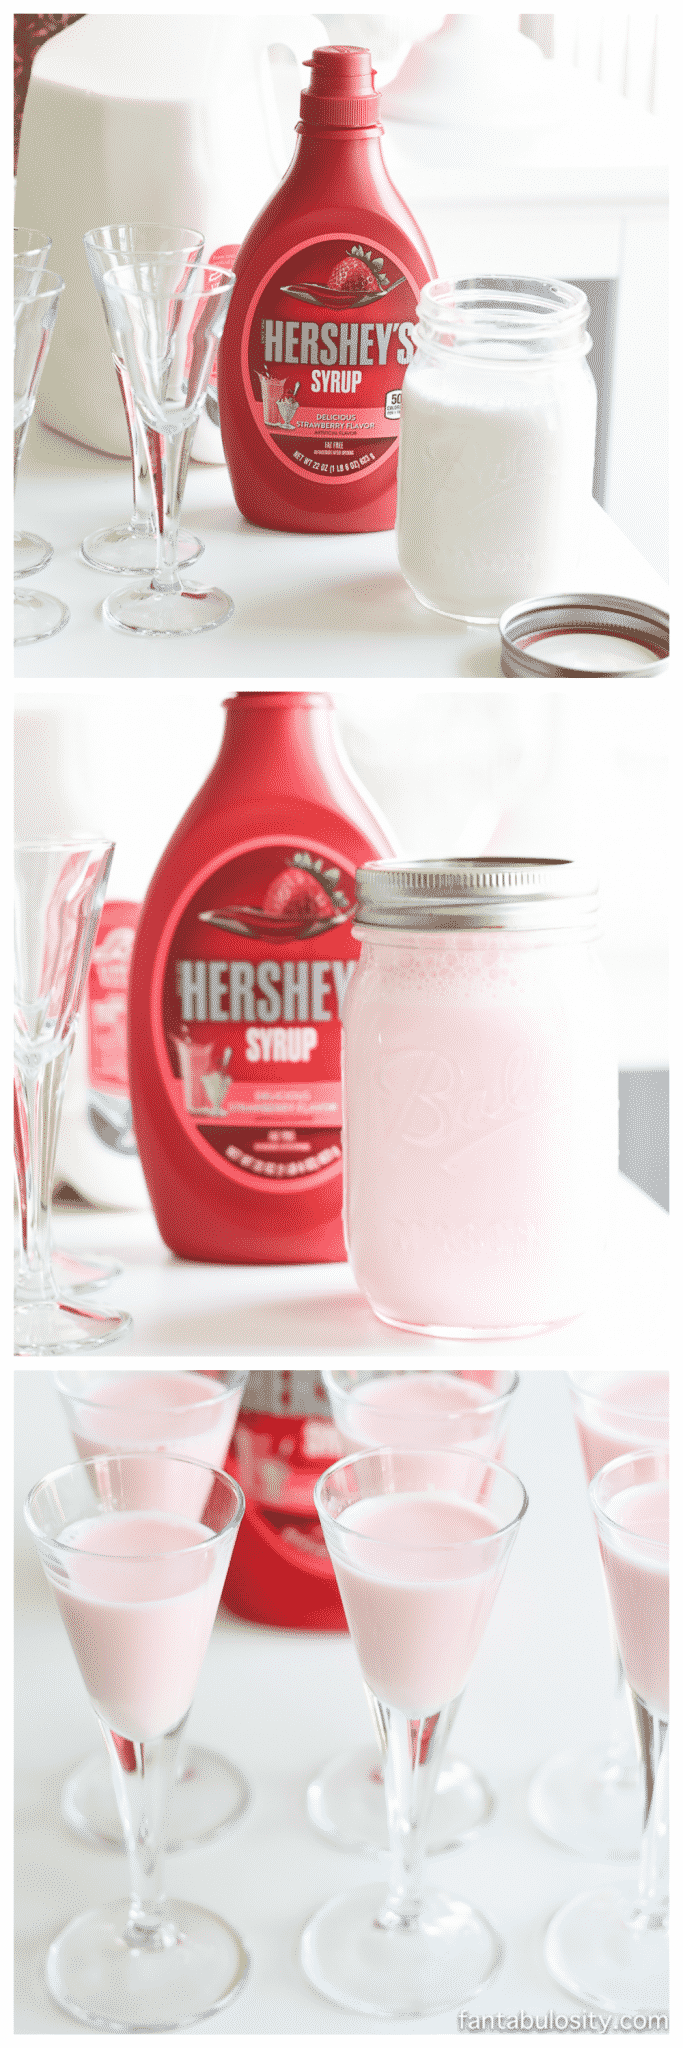 Clink Clink Pink Drink Ideas - Strawberry Milk for a pretty in pink brunch!